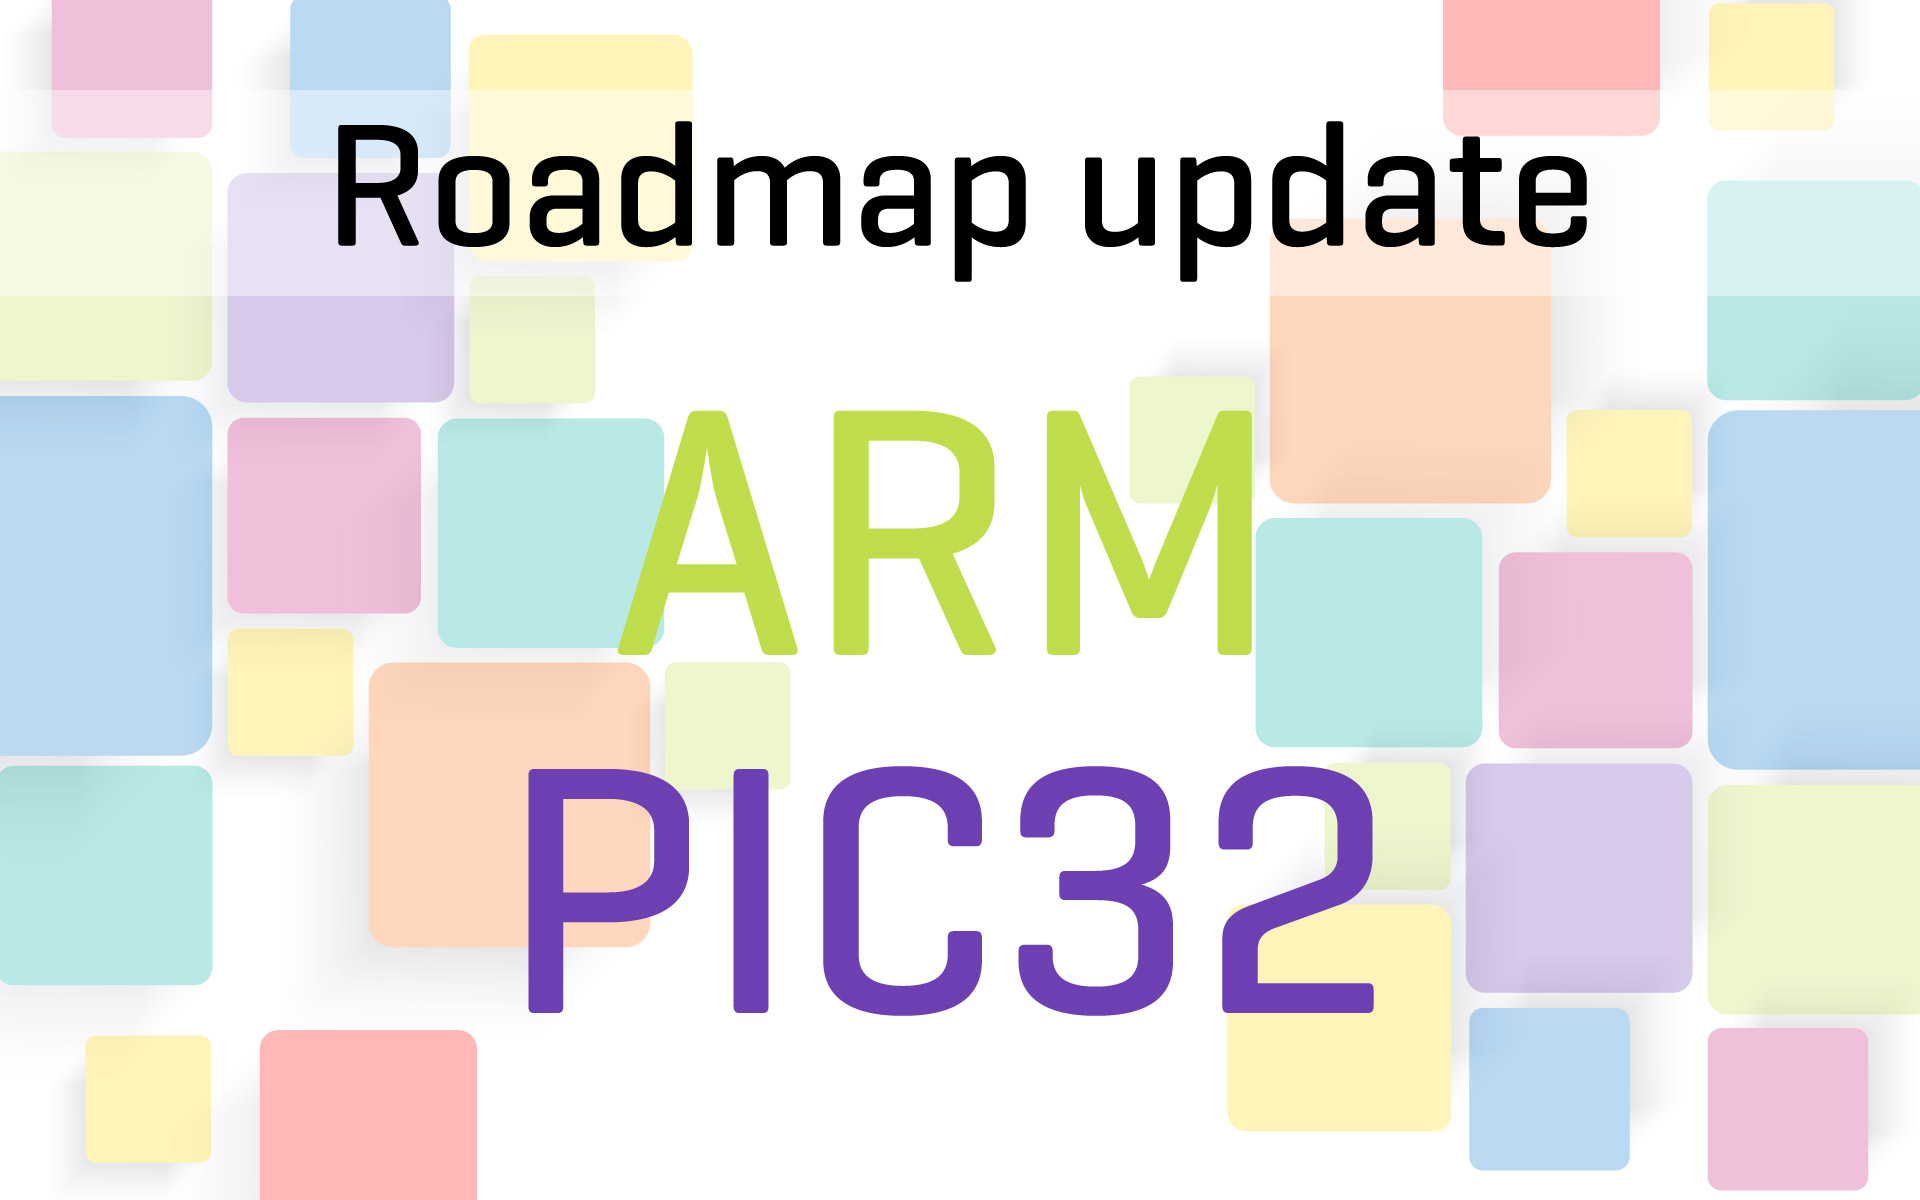 Roadmap update - June progress report on ARM and PIC32 compilers